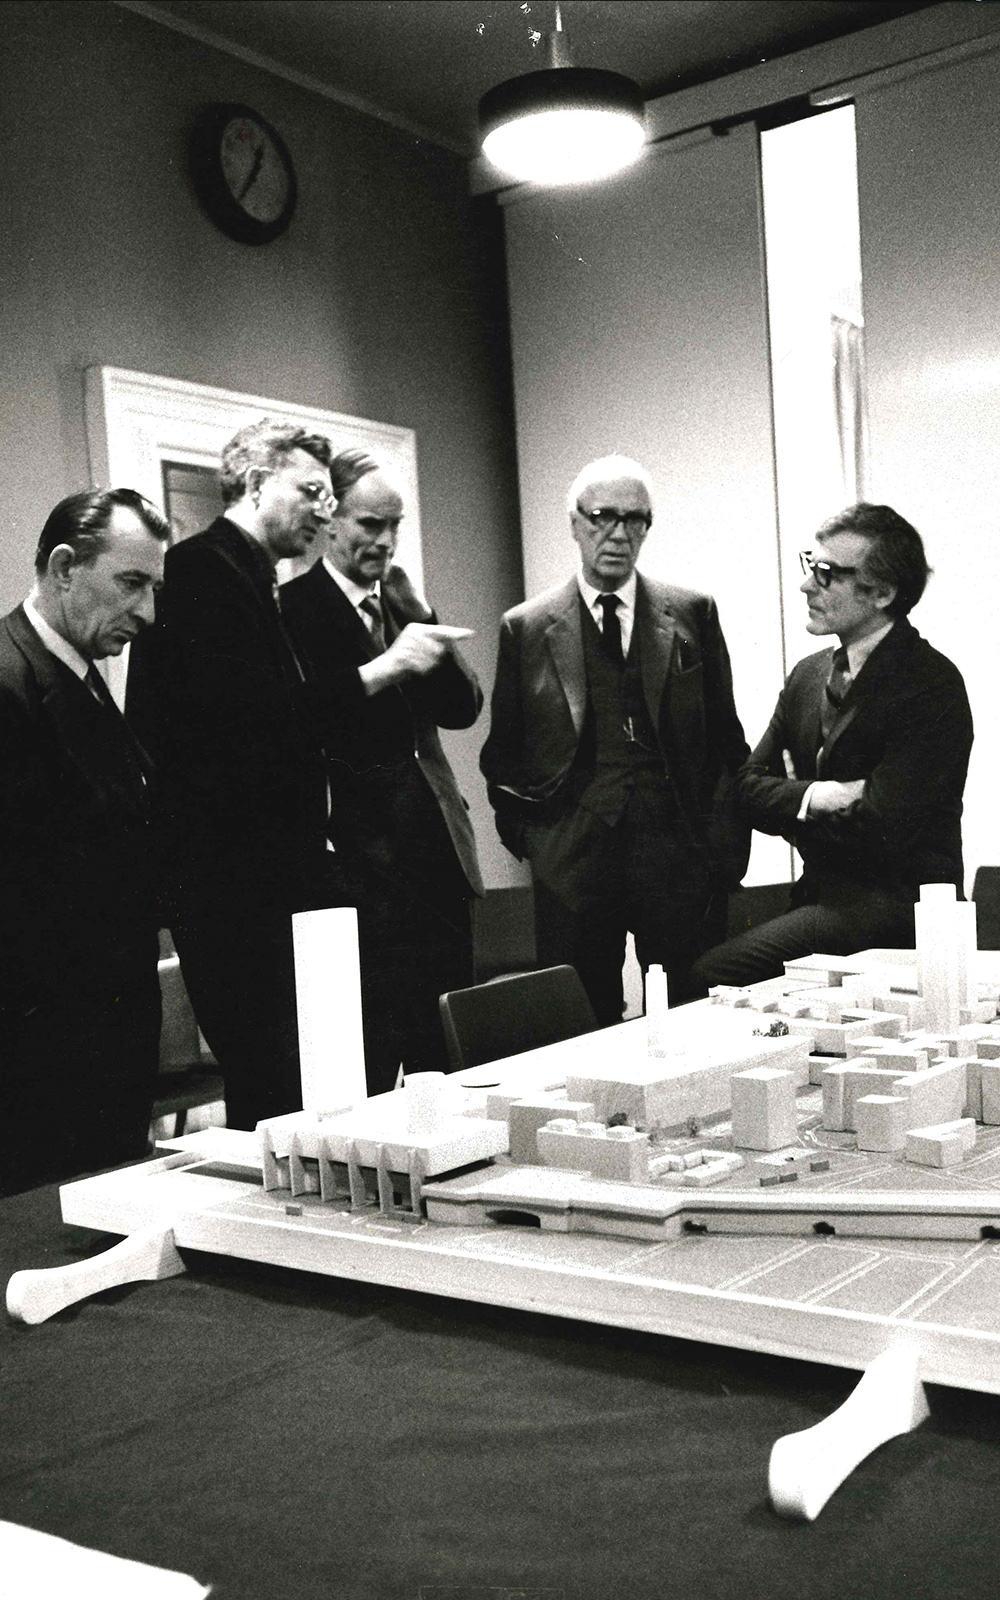 A group of men stand before a model plan of a development site.